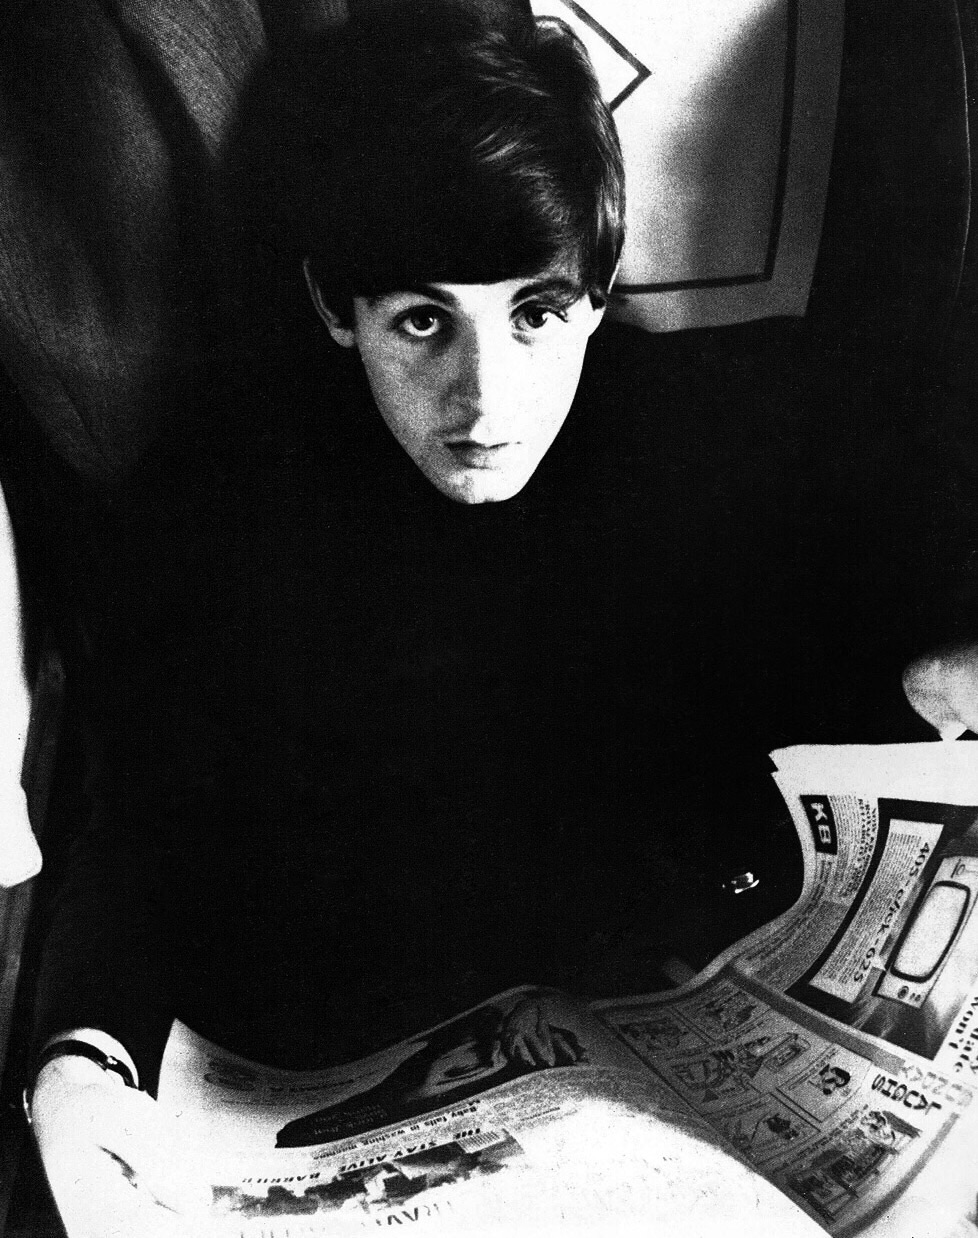 Paul McCartney circa 1963.